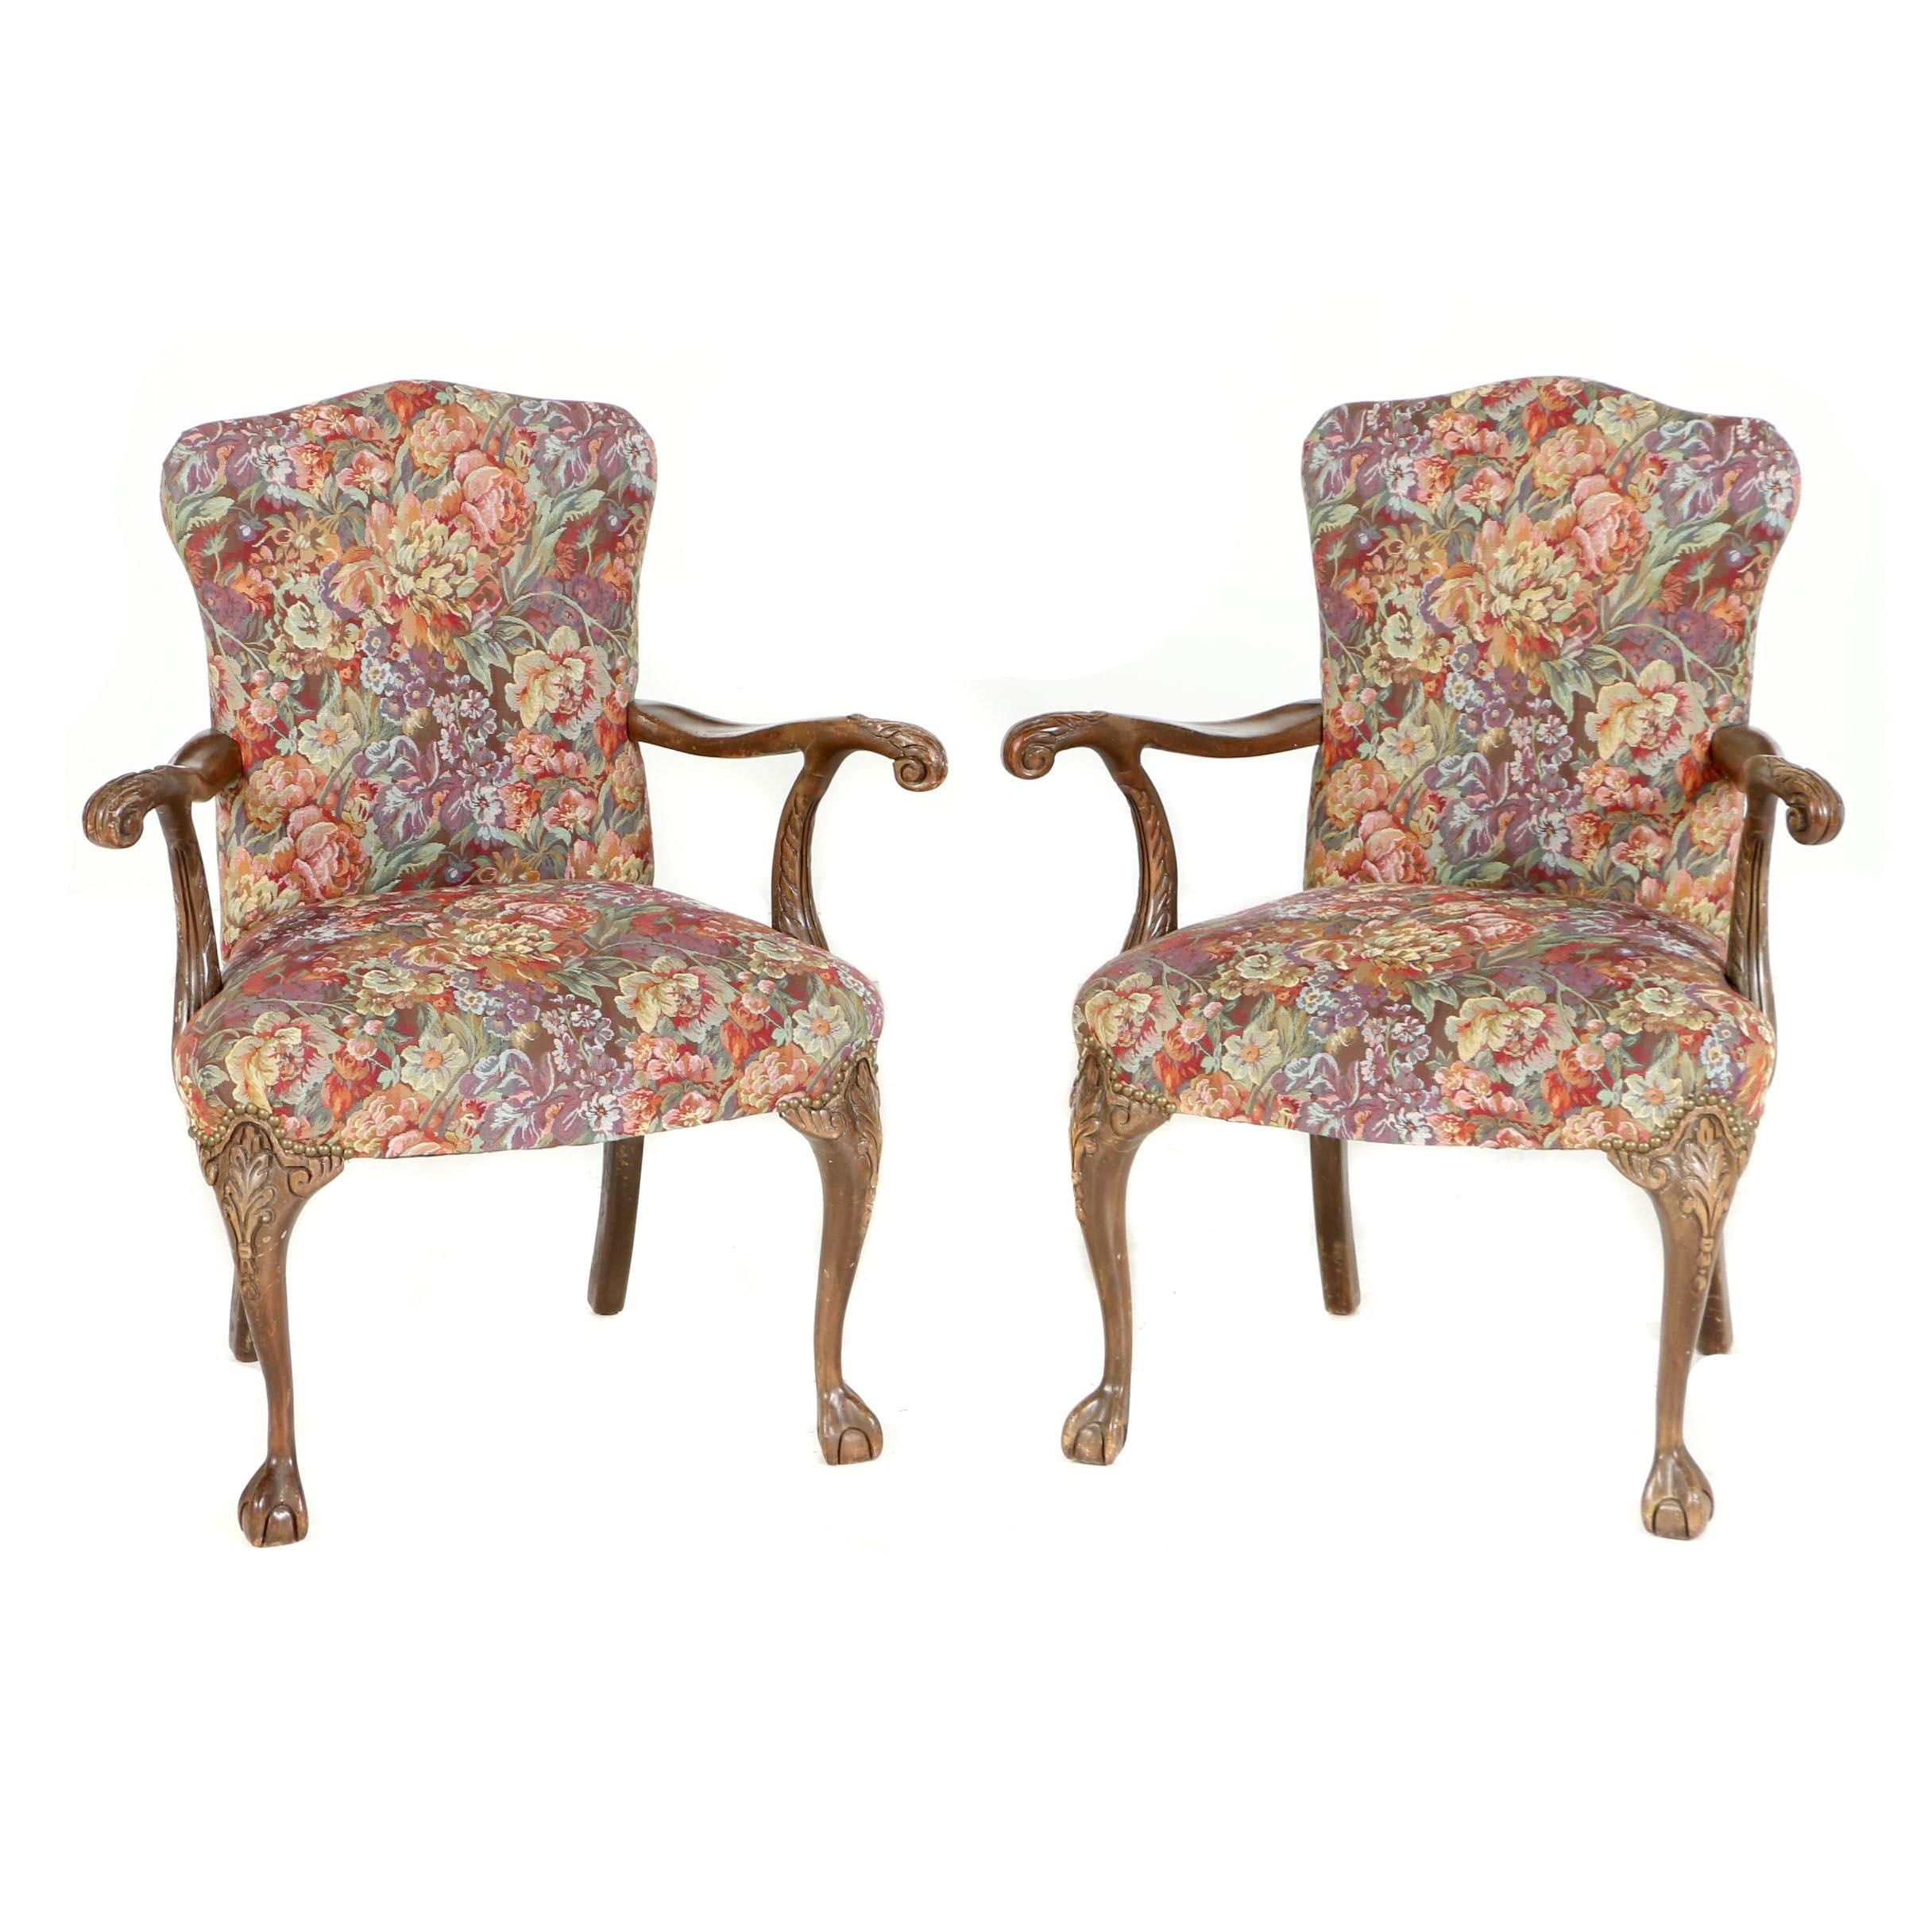 Pair of George III Style Mahogany-Stained Open Armchairs, 20th Century